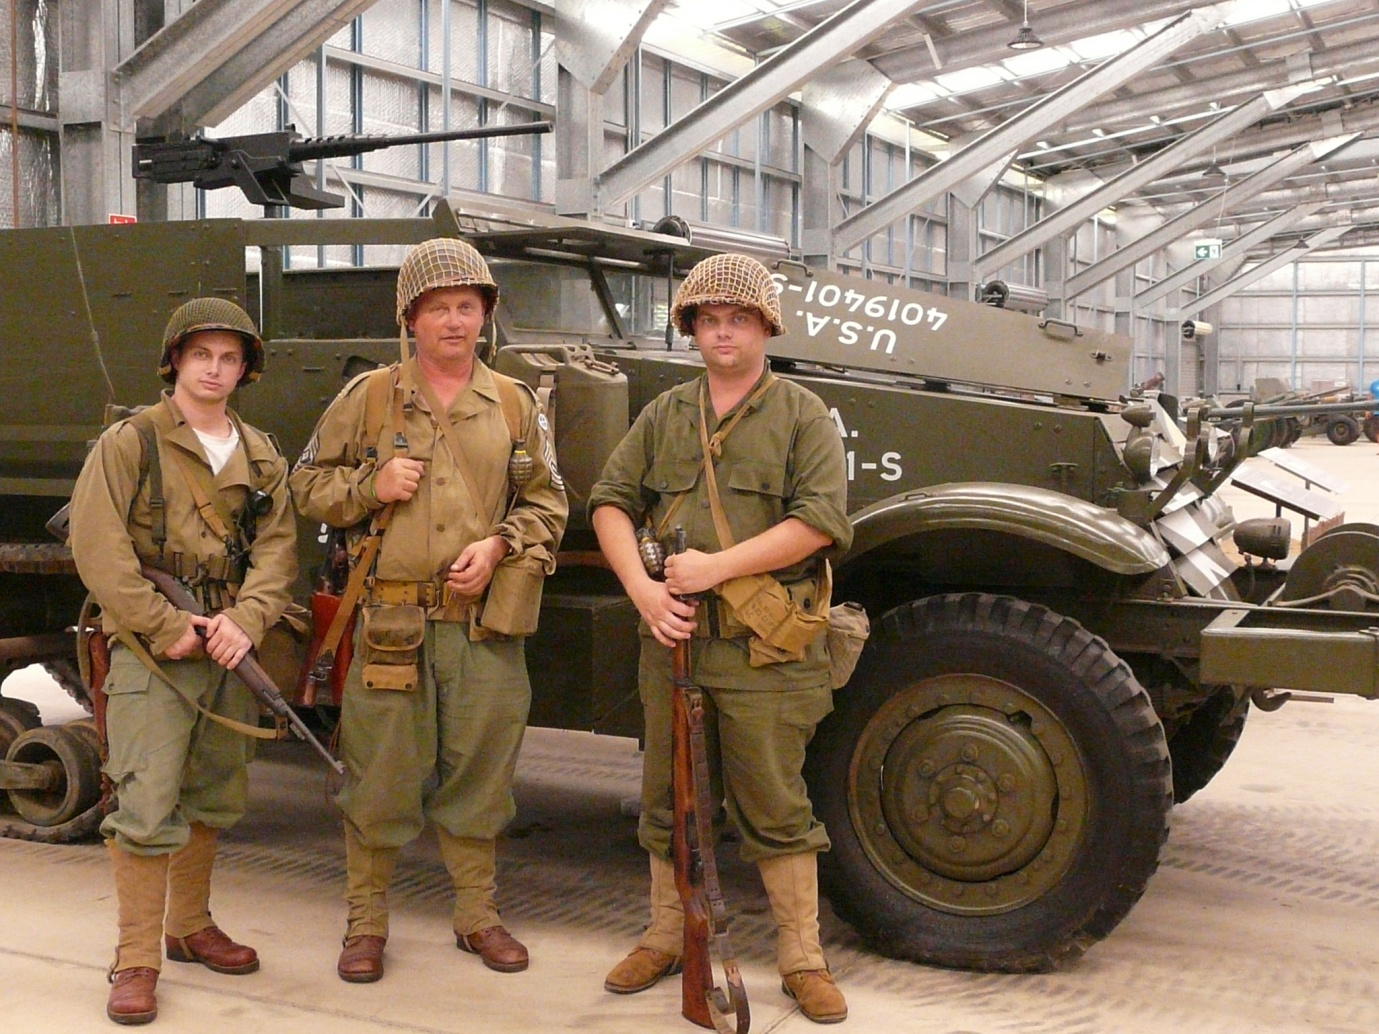 "The day I went was a re-enactors' day. ""Soldiers"" came from all parts of the country, such as this father and two sons from Sydney, to indulge their passion and help out."